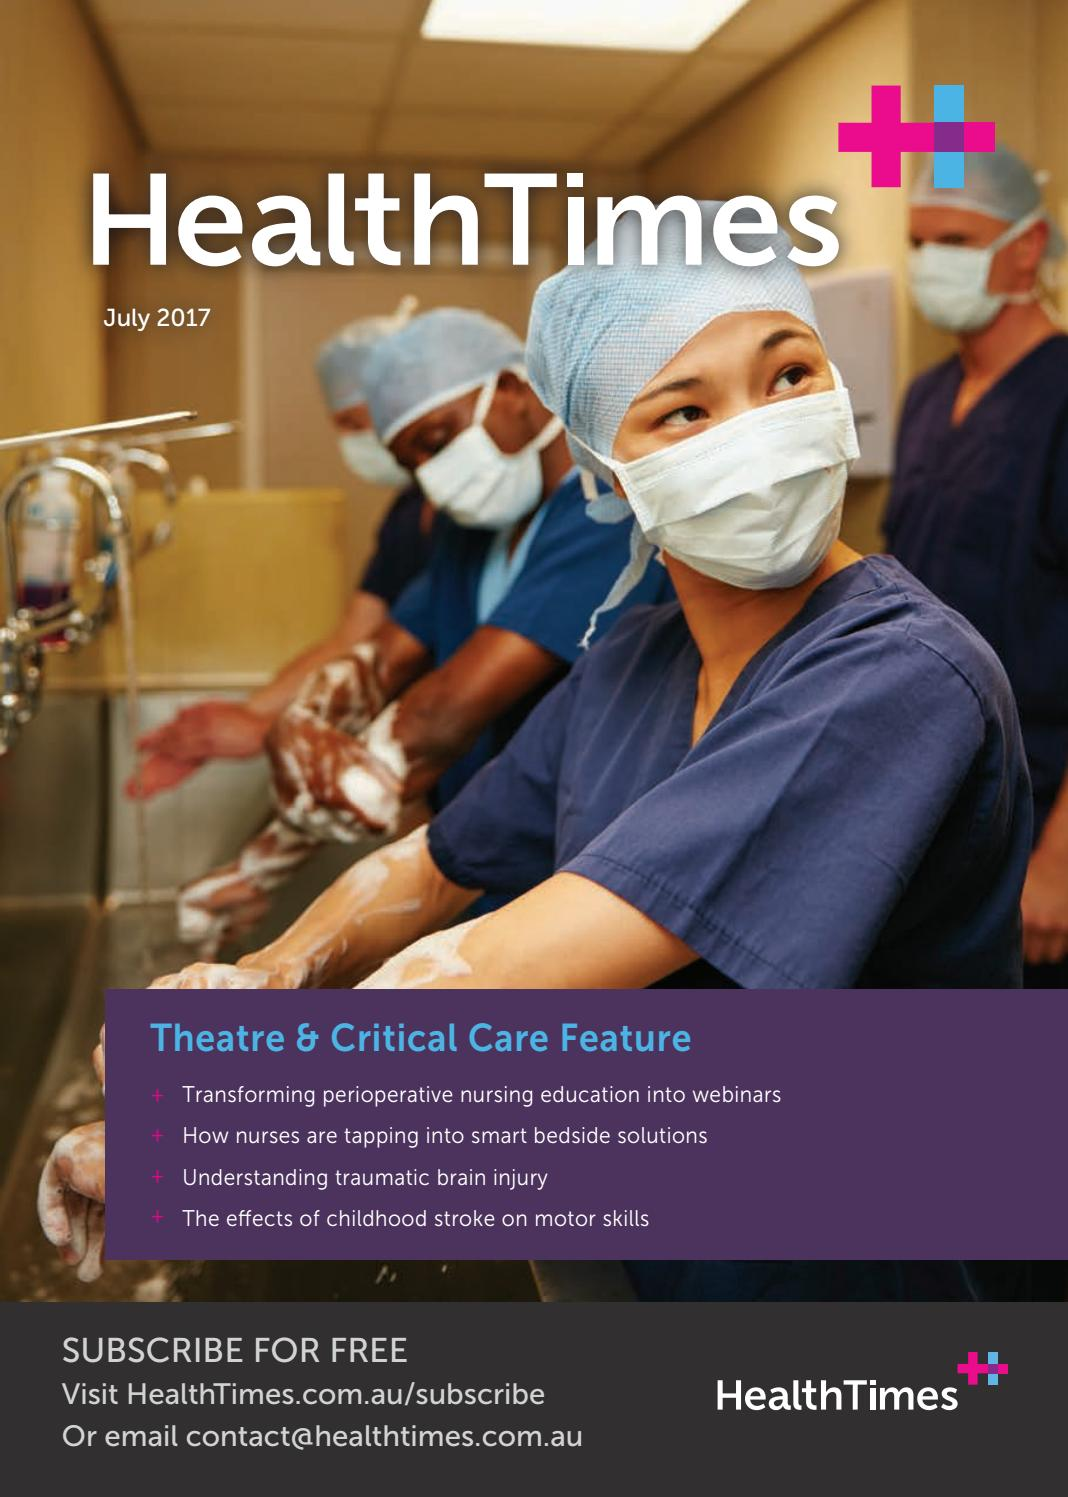 Little Things Matter Exposes Big Threat To Childrens Brains Medaxs >> Health Times July 2017 By Seabreeze Communications Issuu